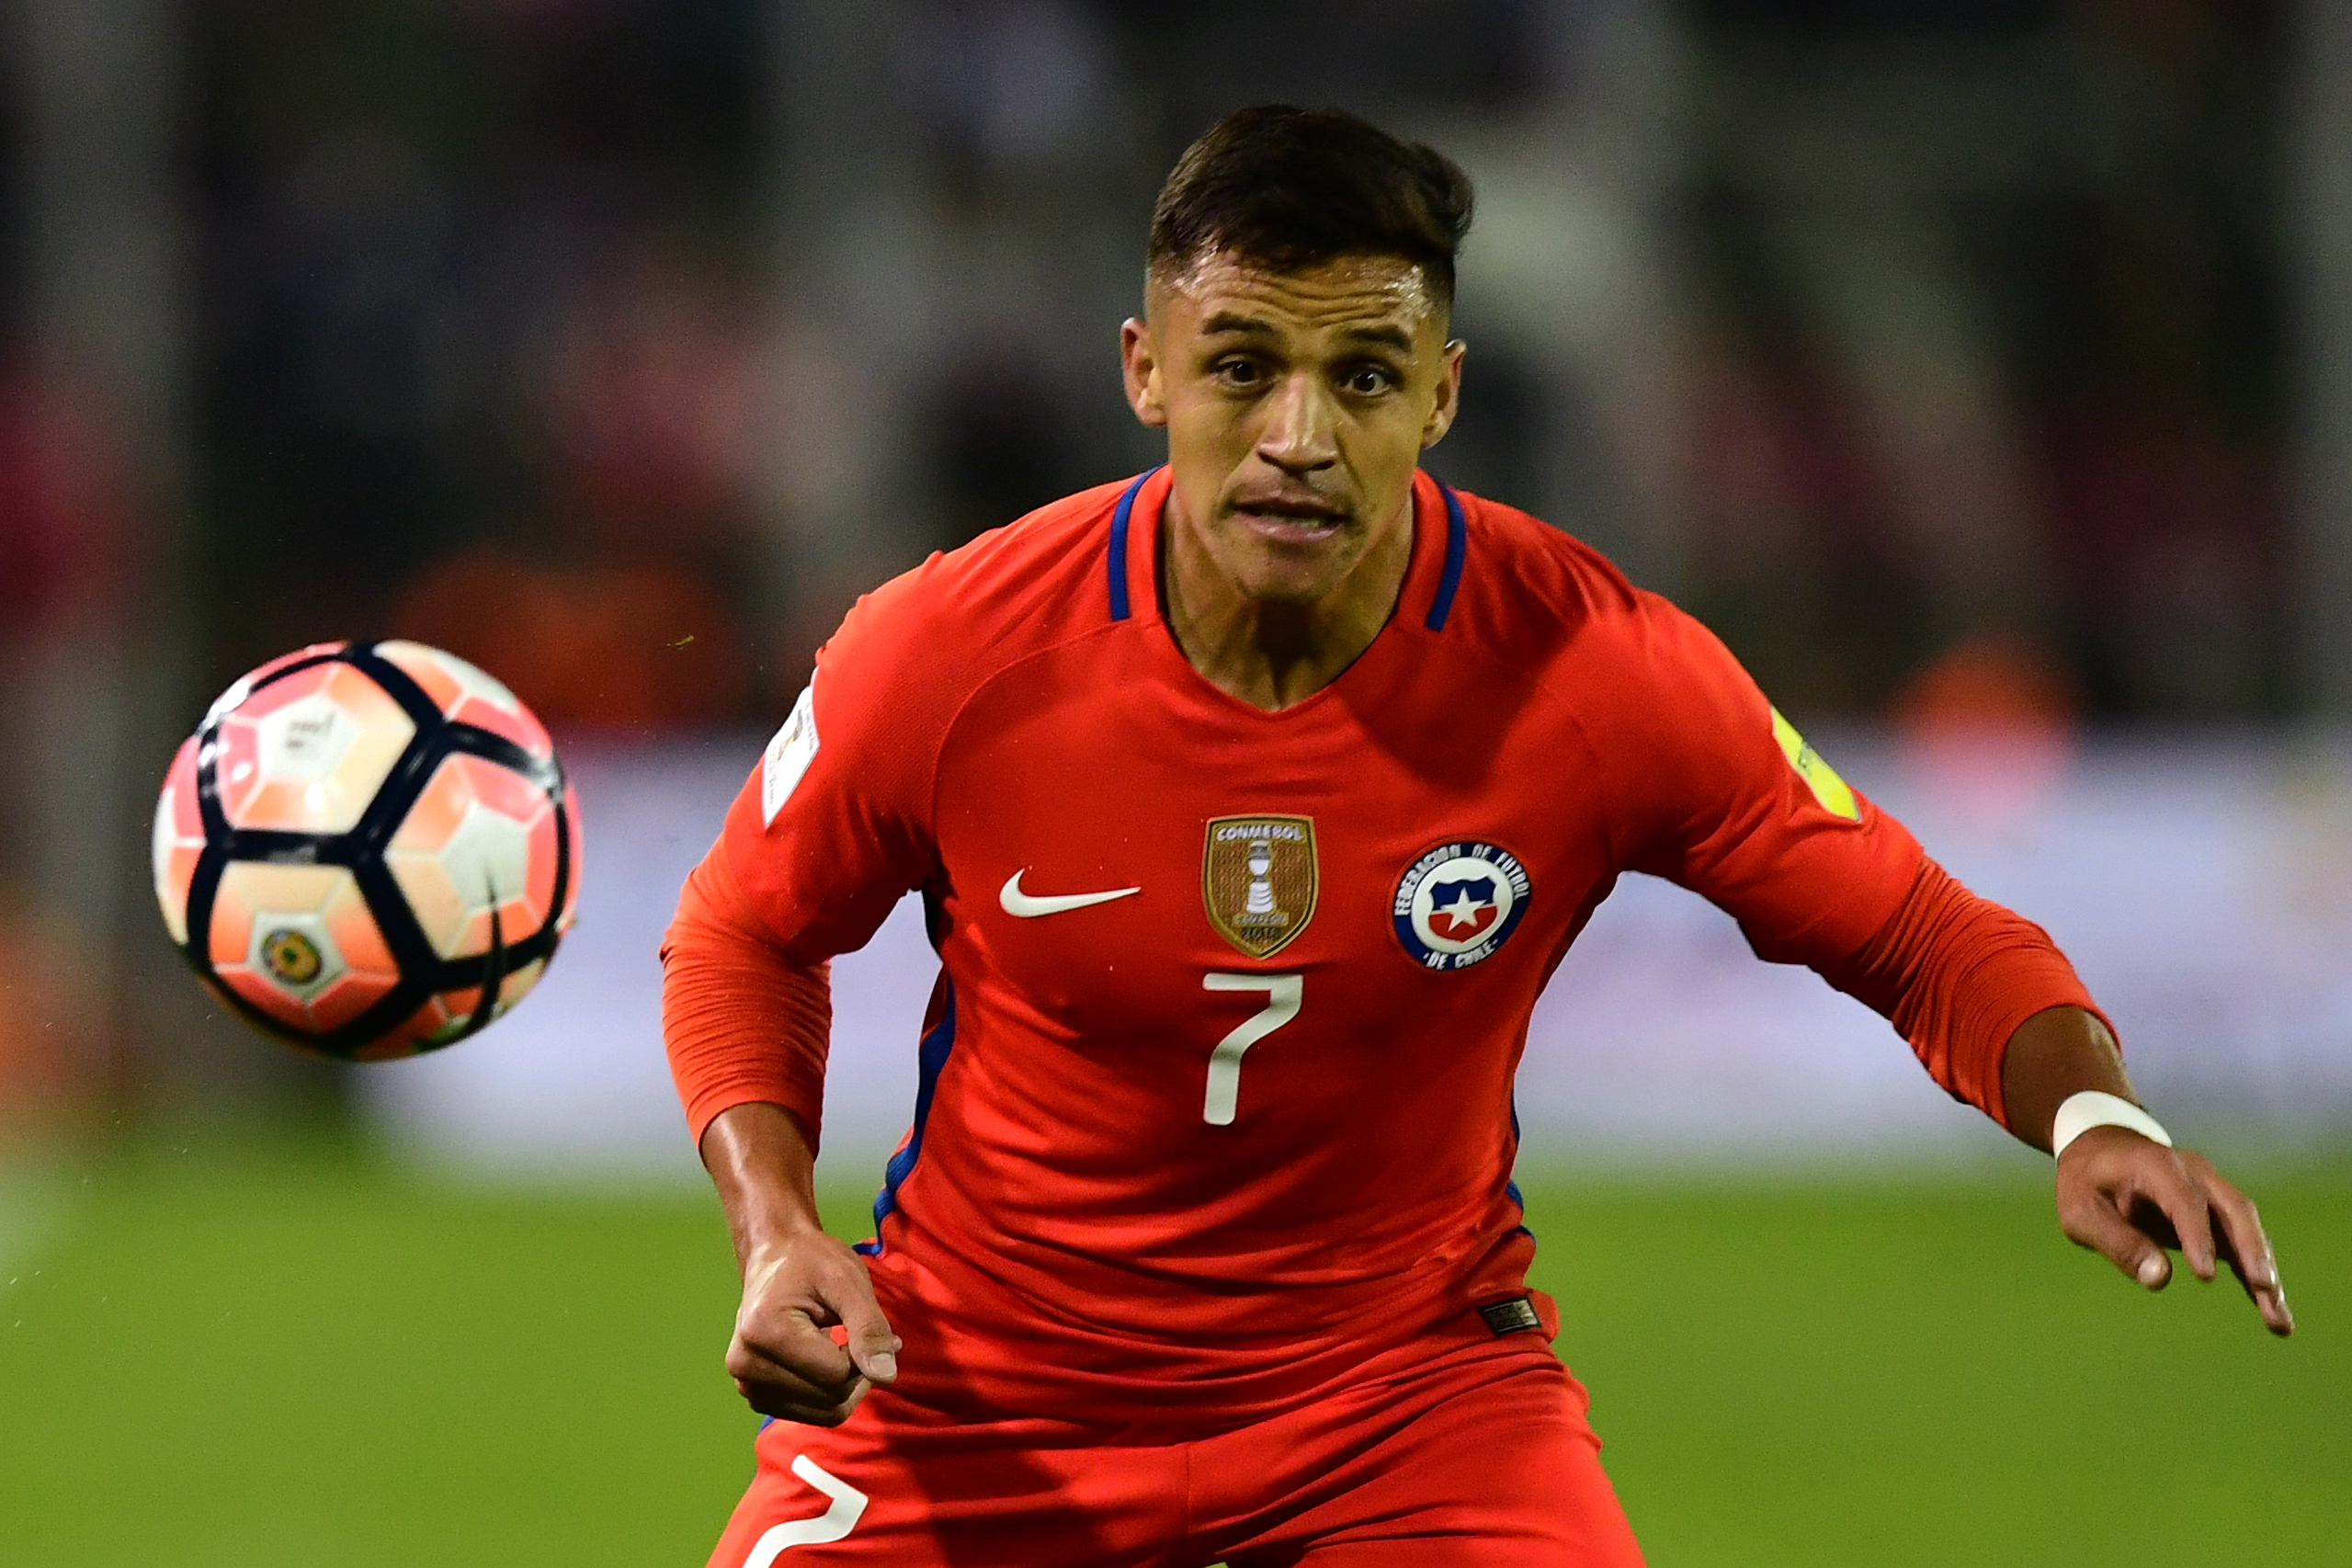 Alexis Sanchez transfer deadline day rumours 'all made up', says Chile team-mate Arturo Vidal